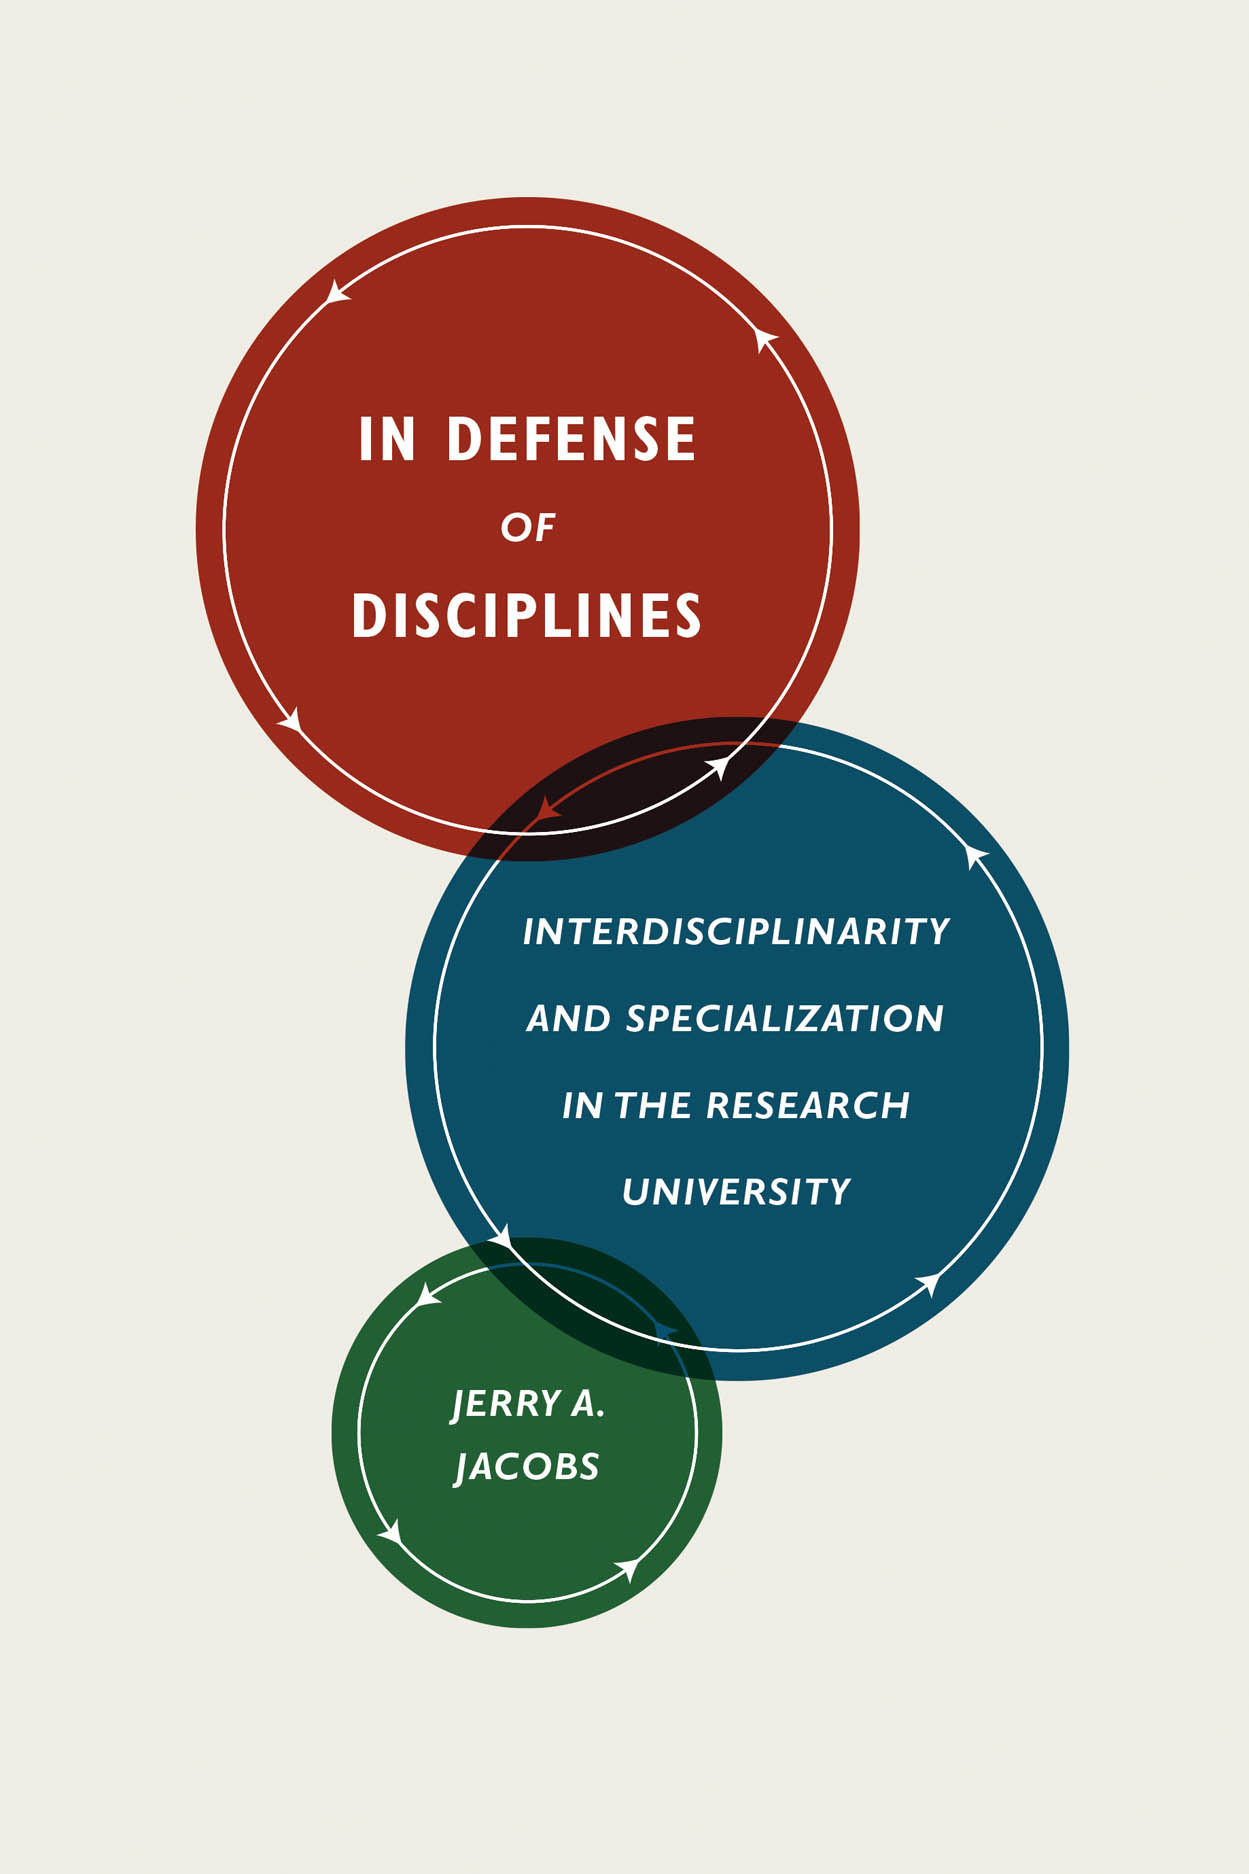 In Defense of Disciplines: Interdisciplinarity and Specialization in the Research University